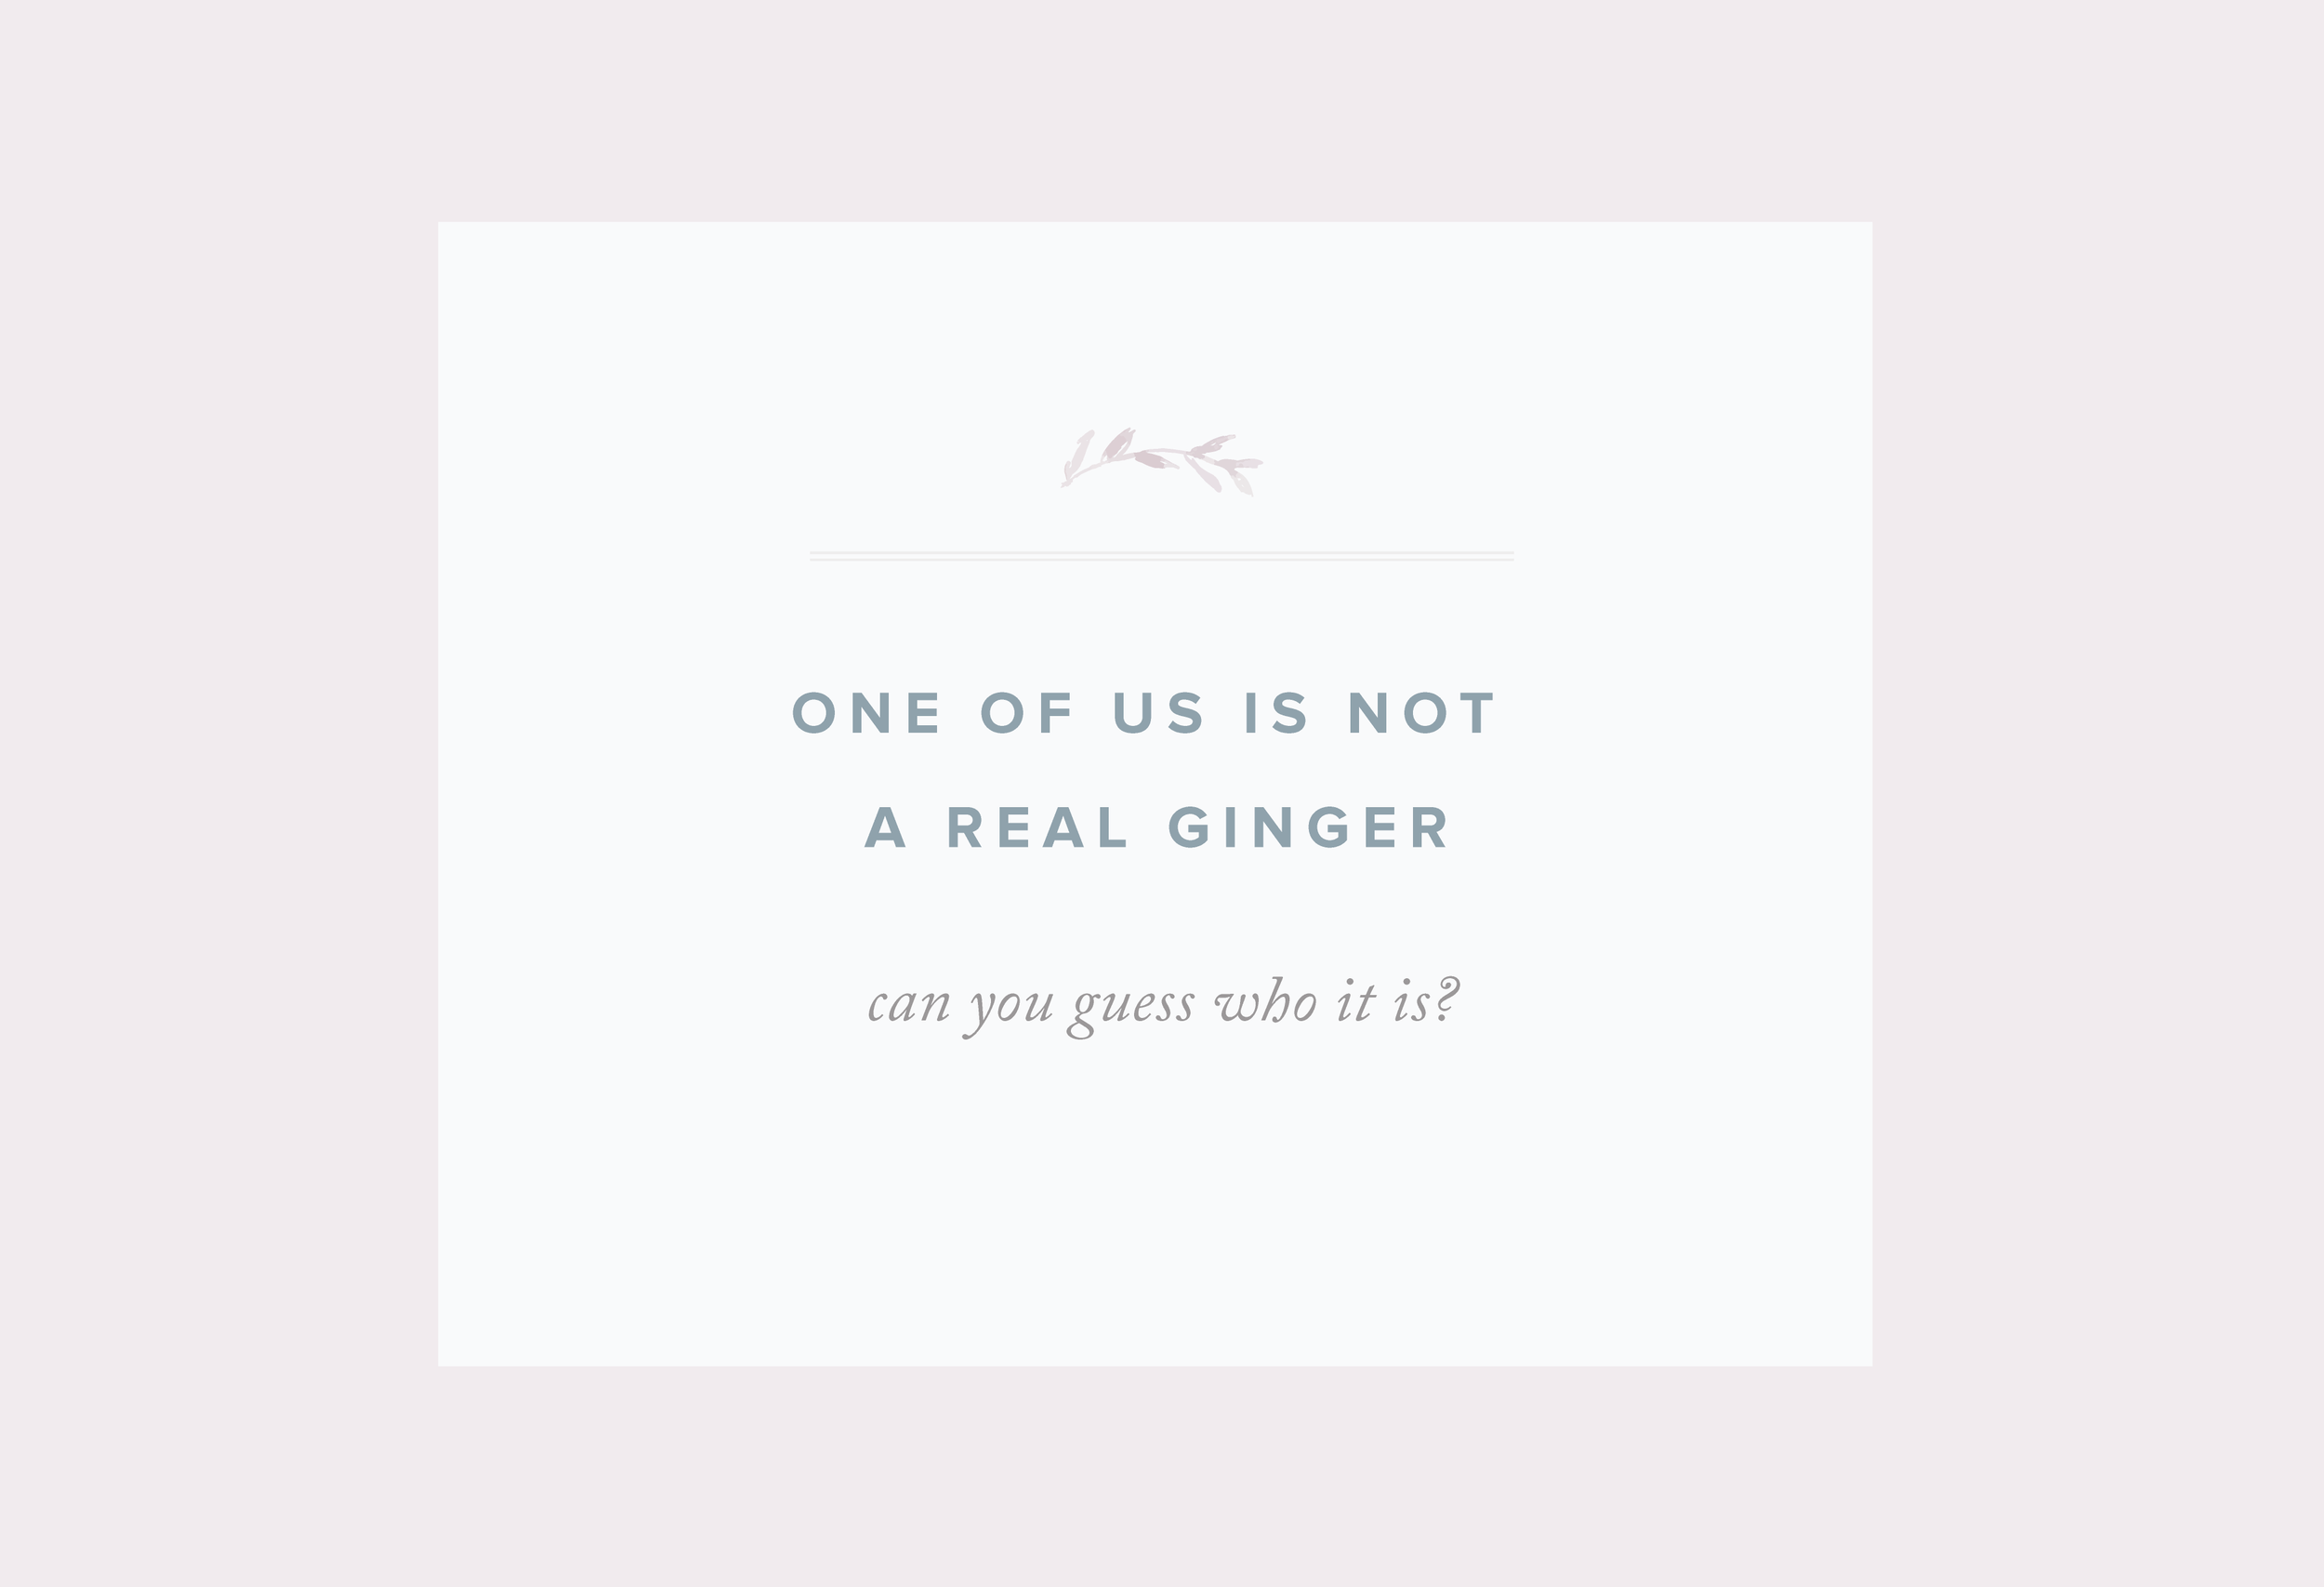 meet-the-gingers-01.png